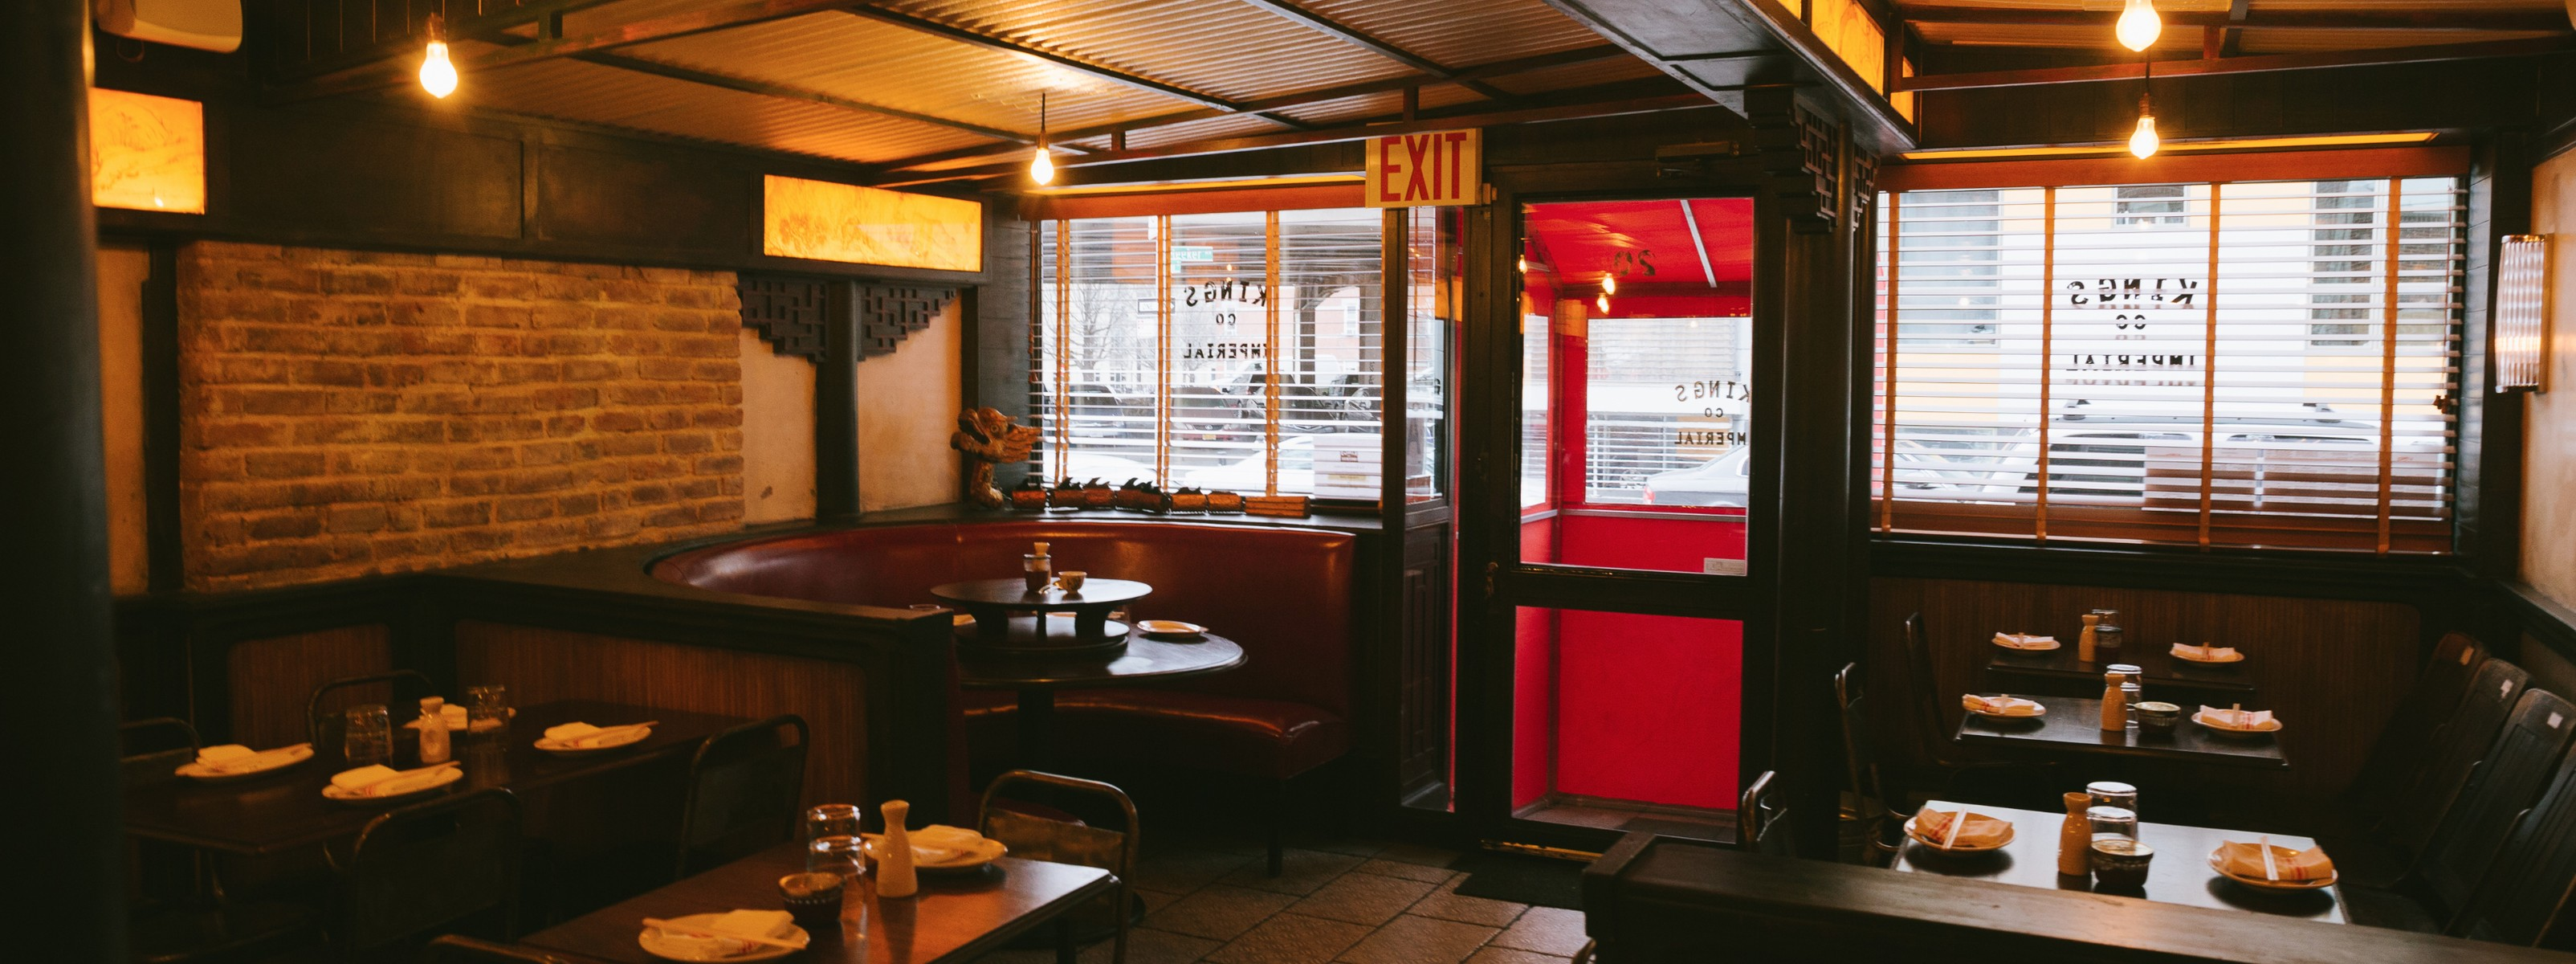 Excellent Nyc Restaurants For Your Birthday Dinner New